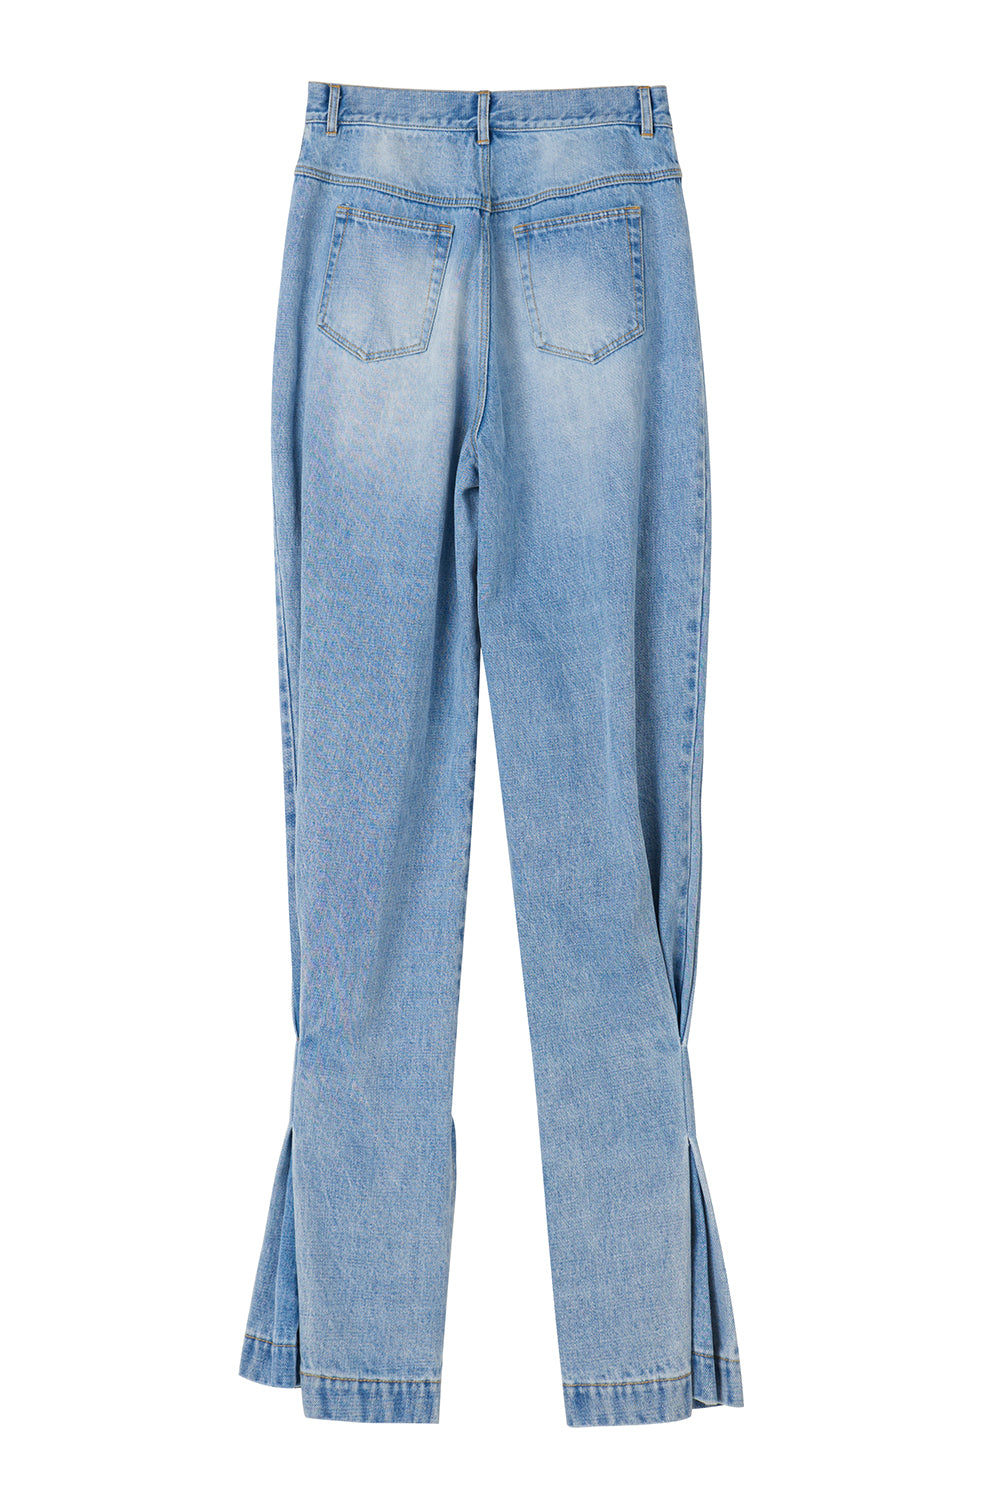 Jefferson Denim Jeans